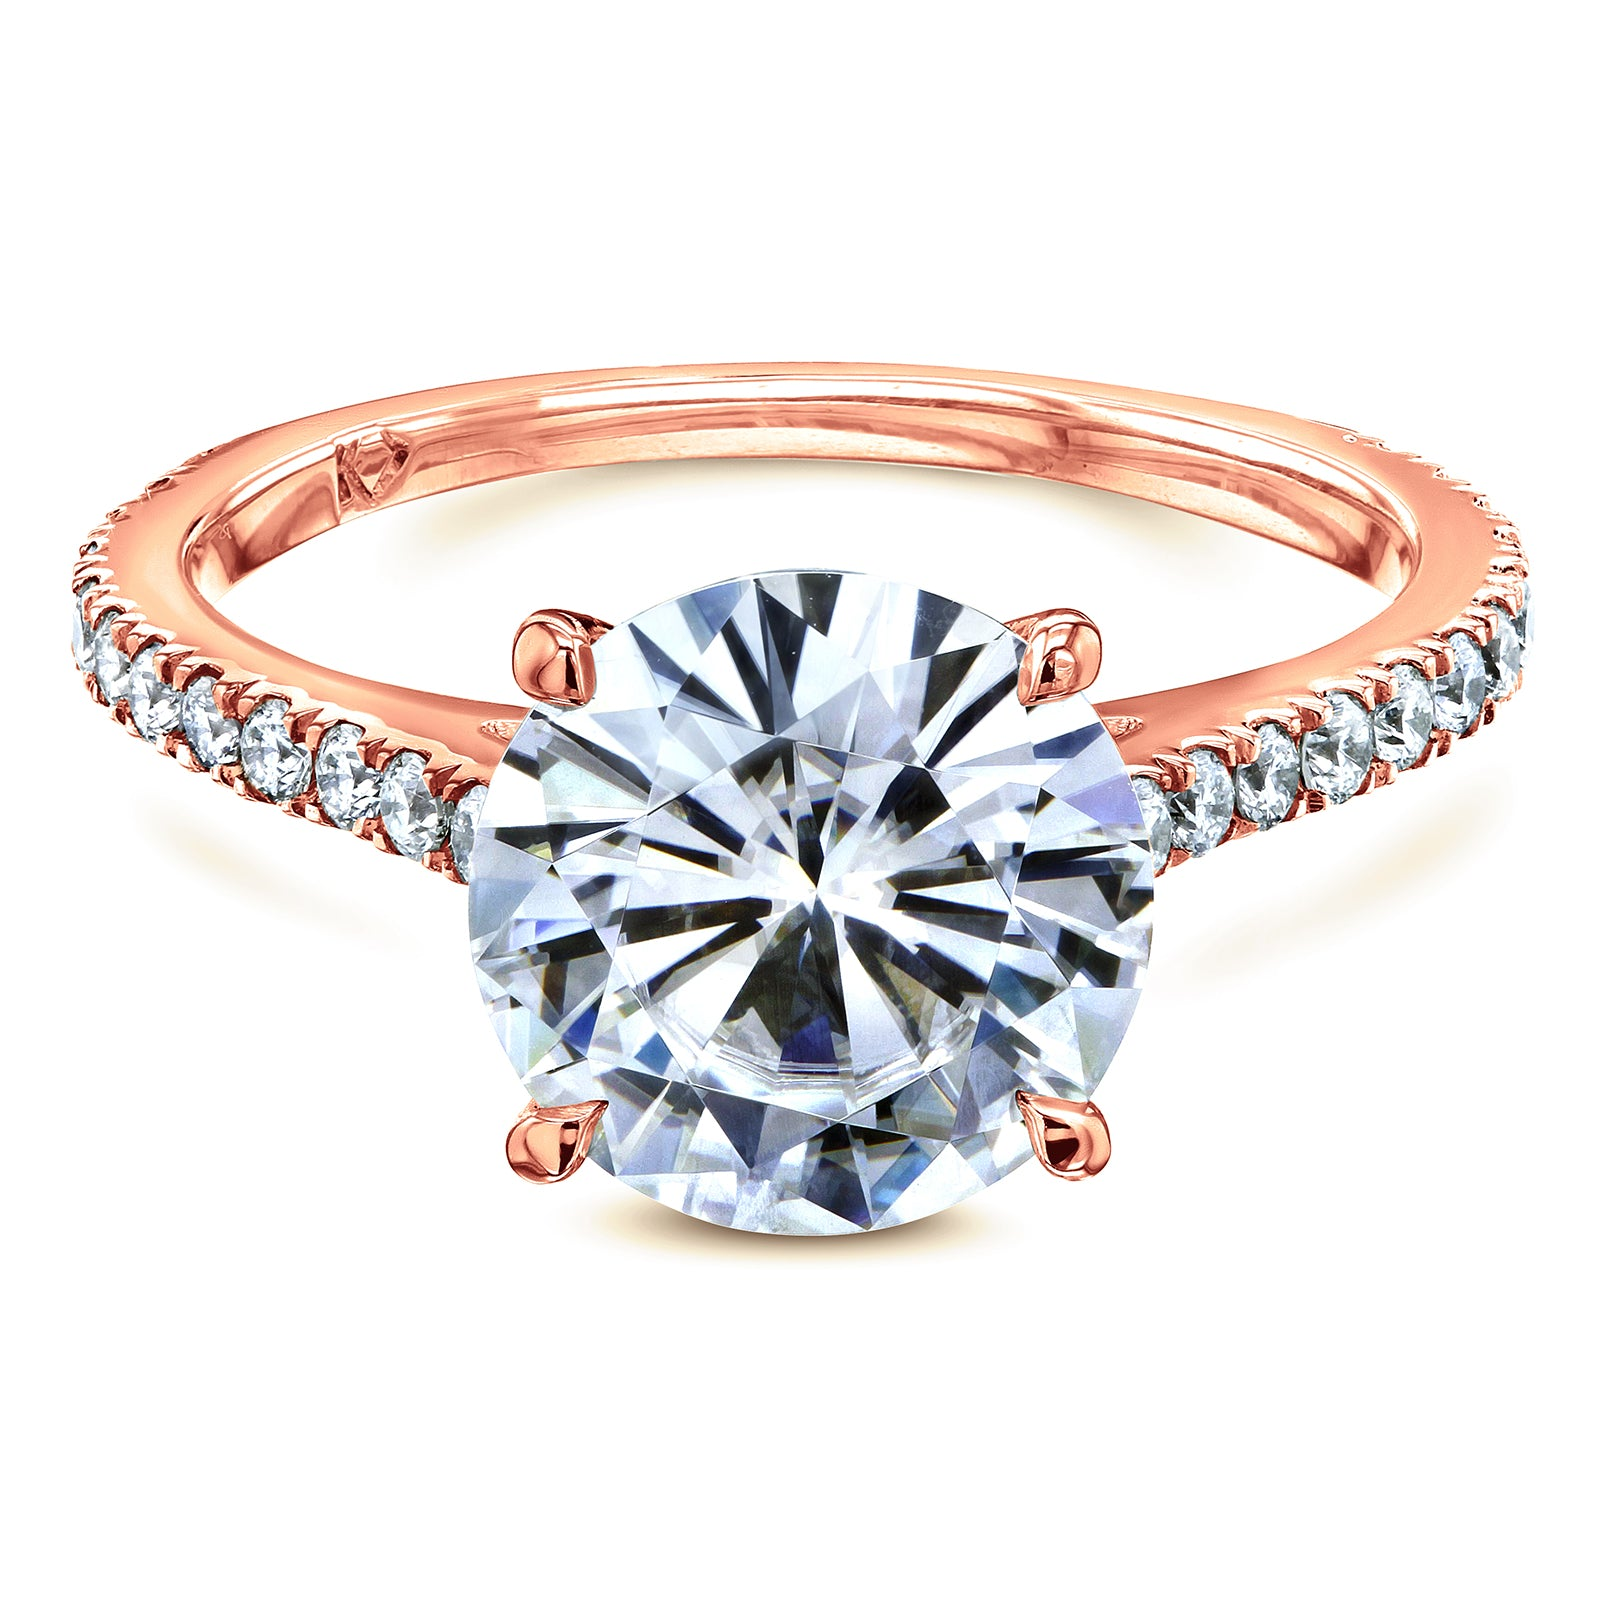 Top Basket Cathedral 9mm Moissanite and Diamond Ring 14k Rose Gold - 5